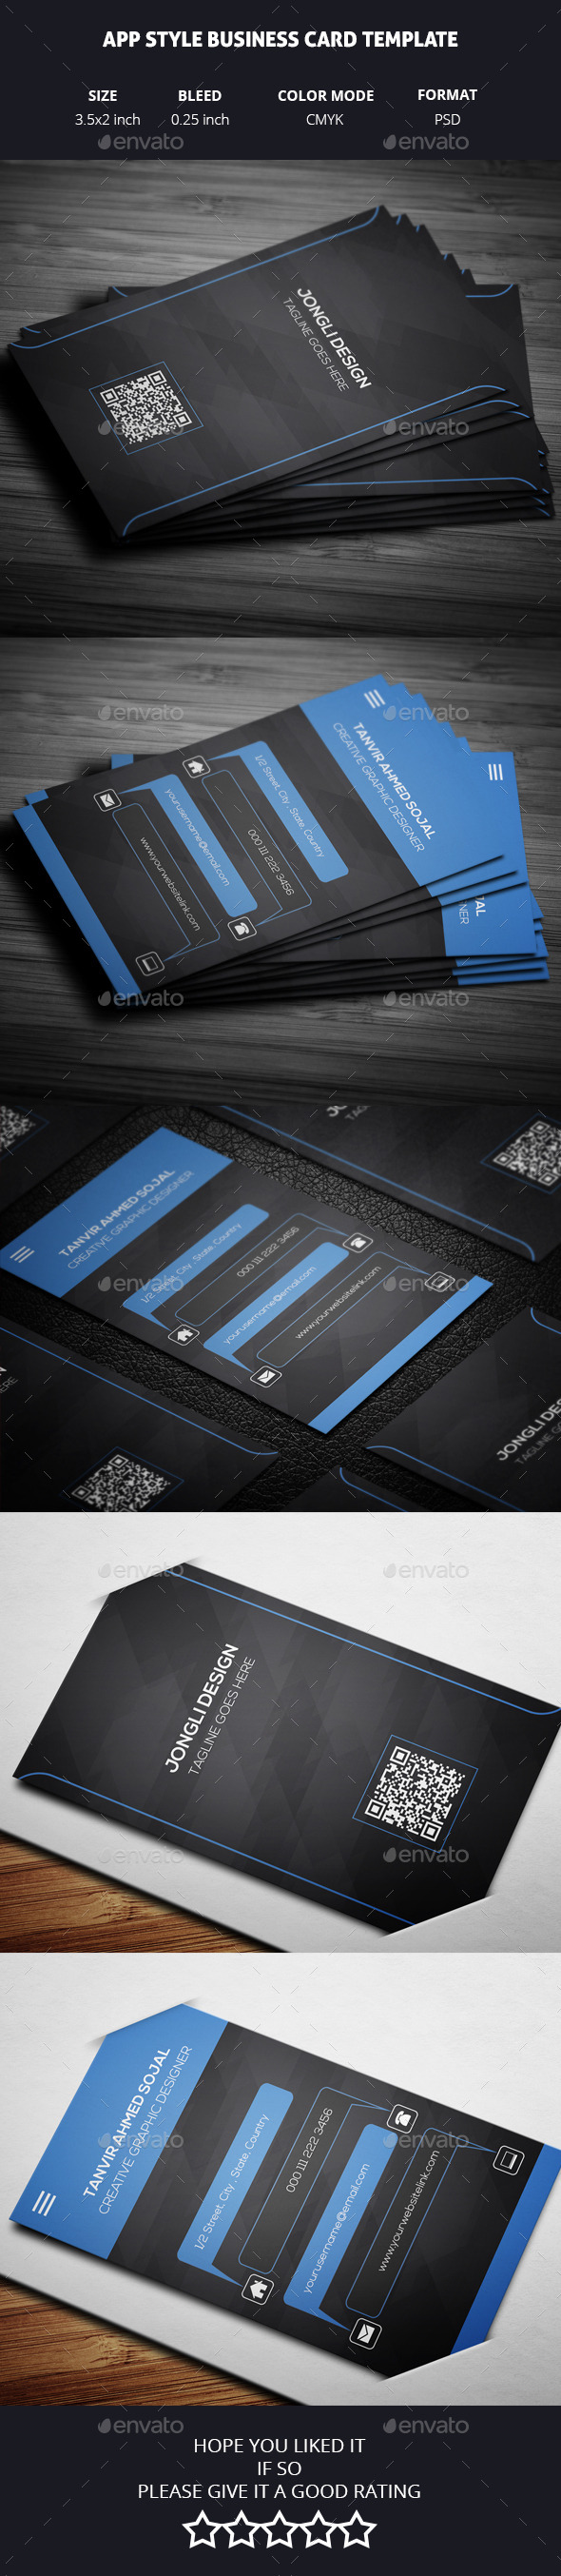 GraphicRiver App Style Business Card Template 11144590